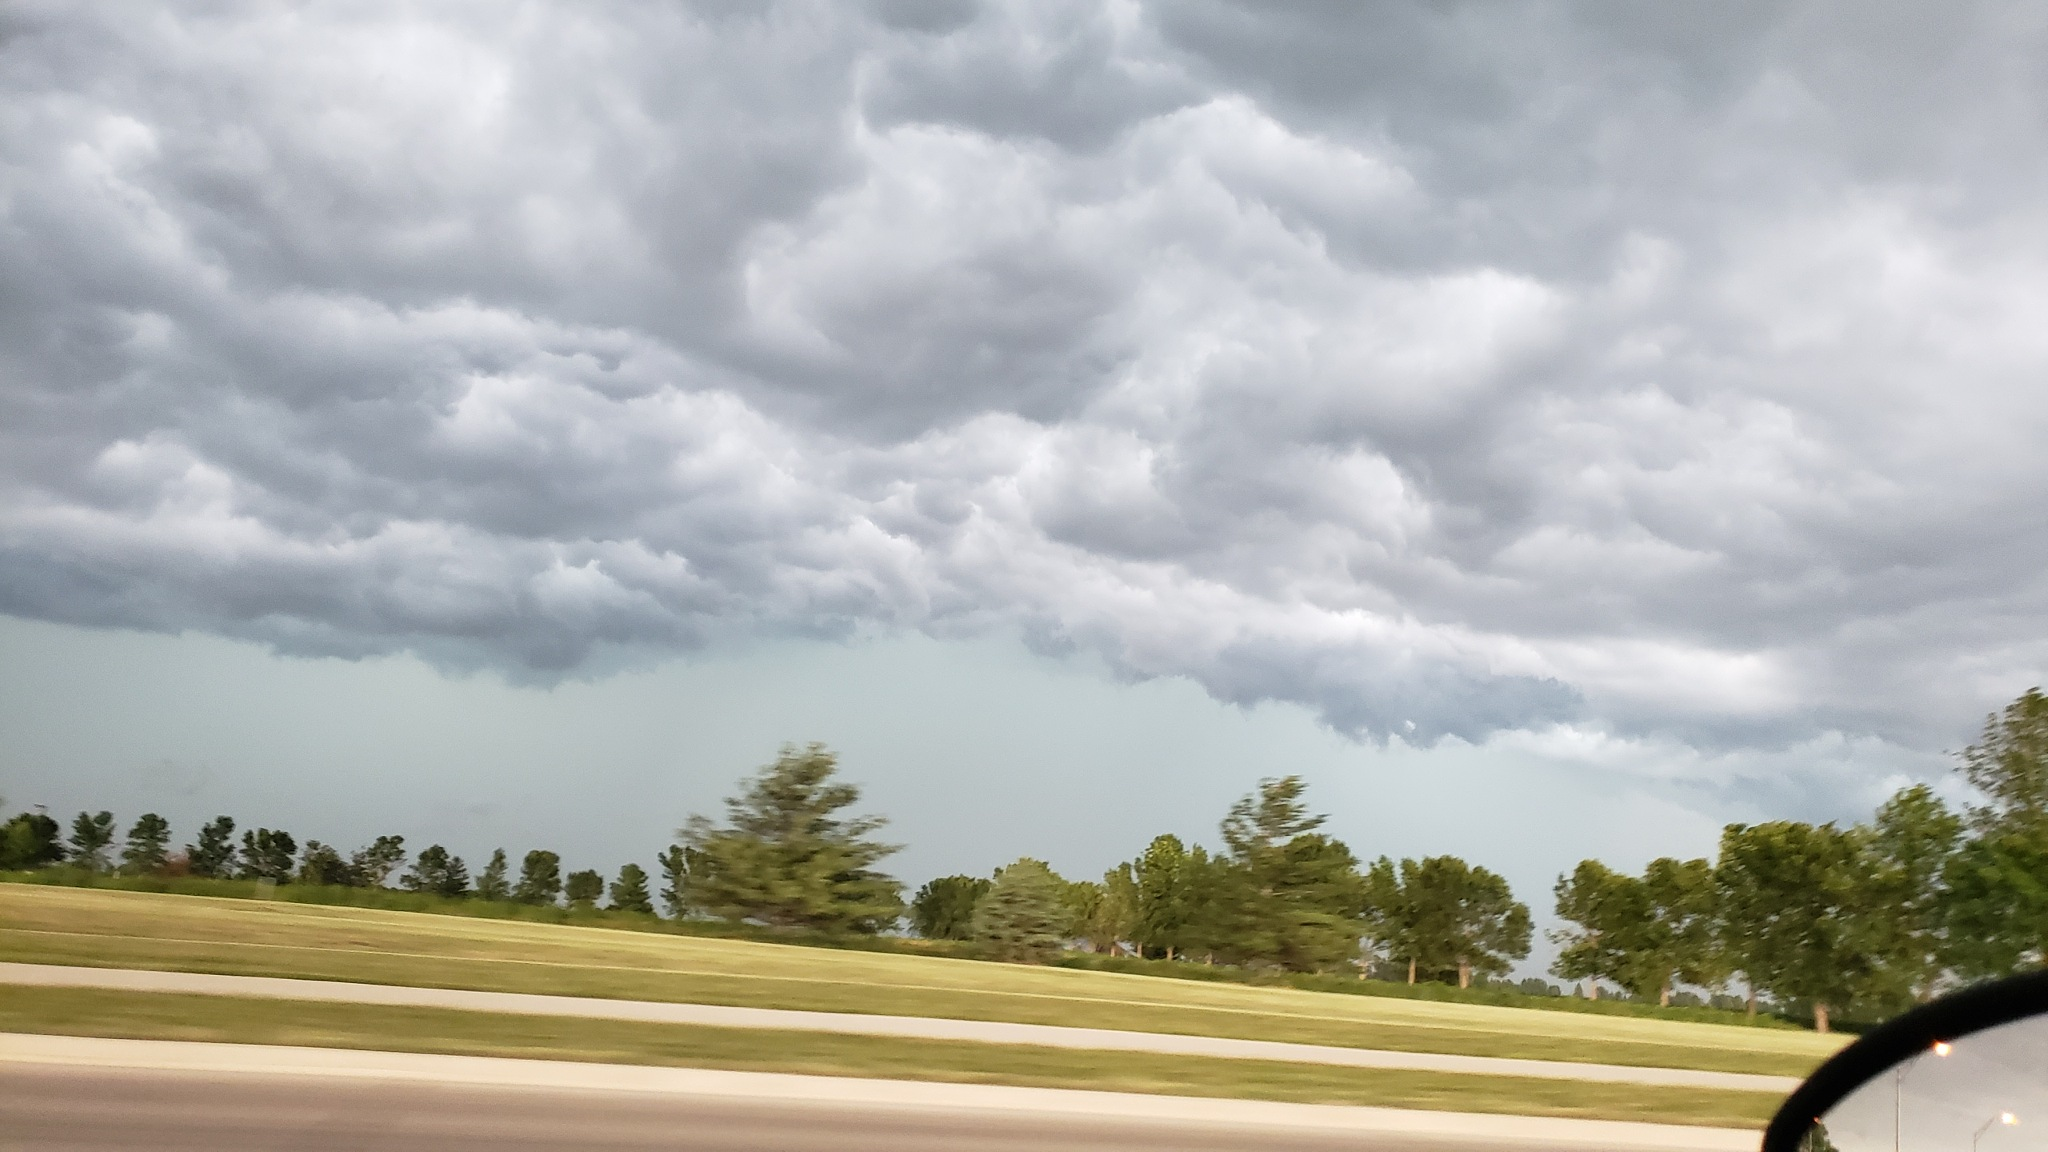 Stormy clouds by Amanda Epting